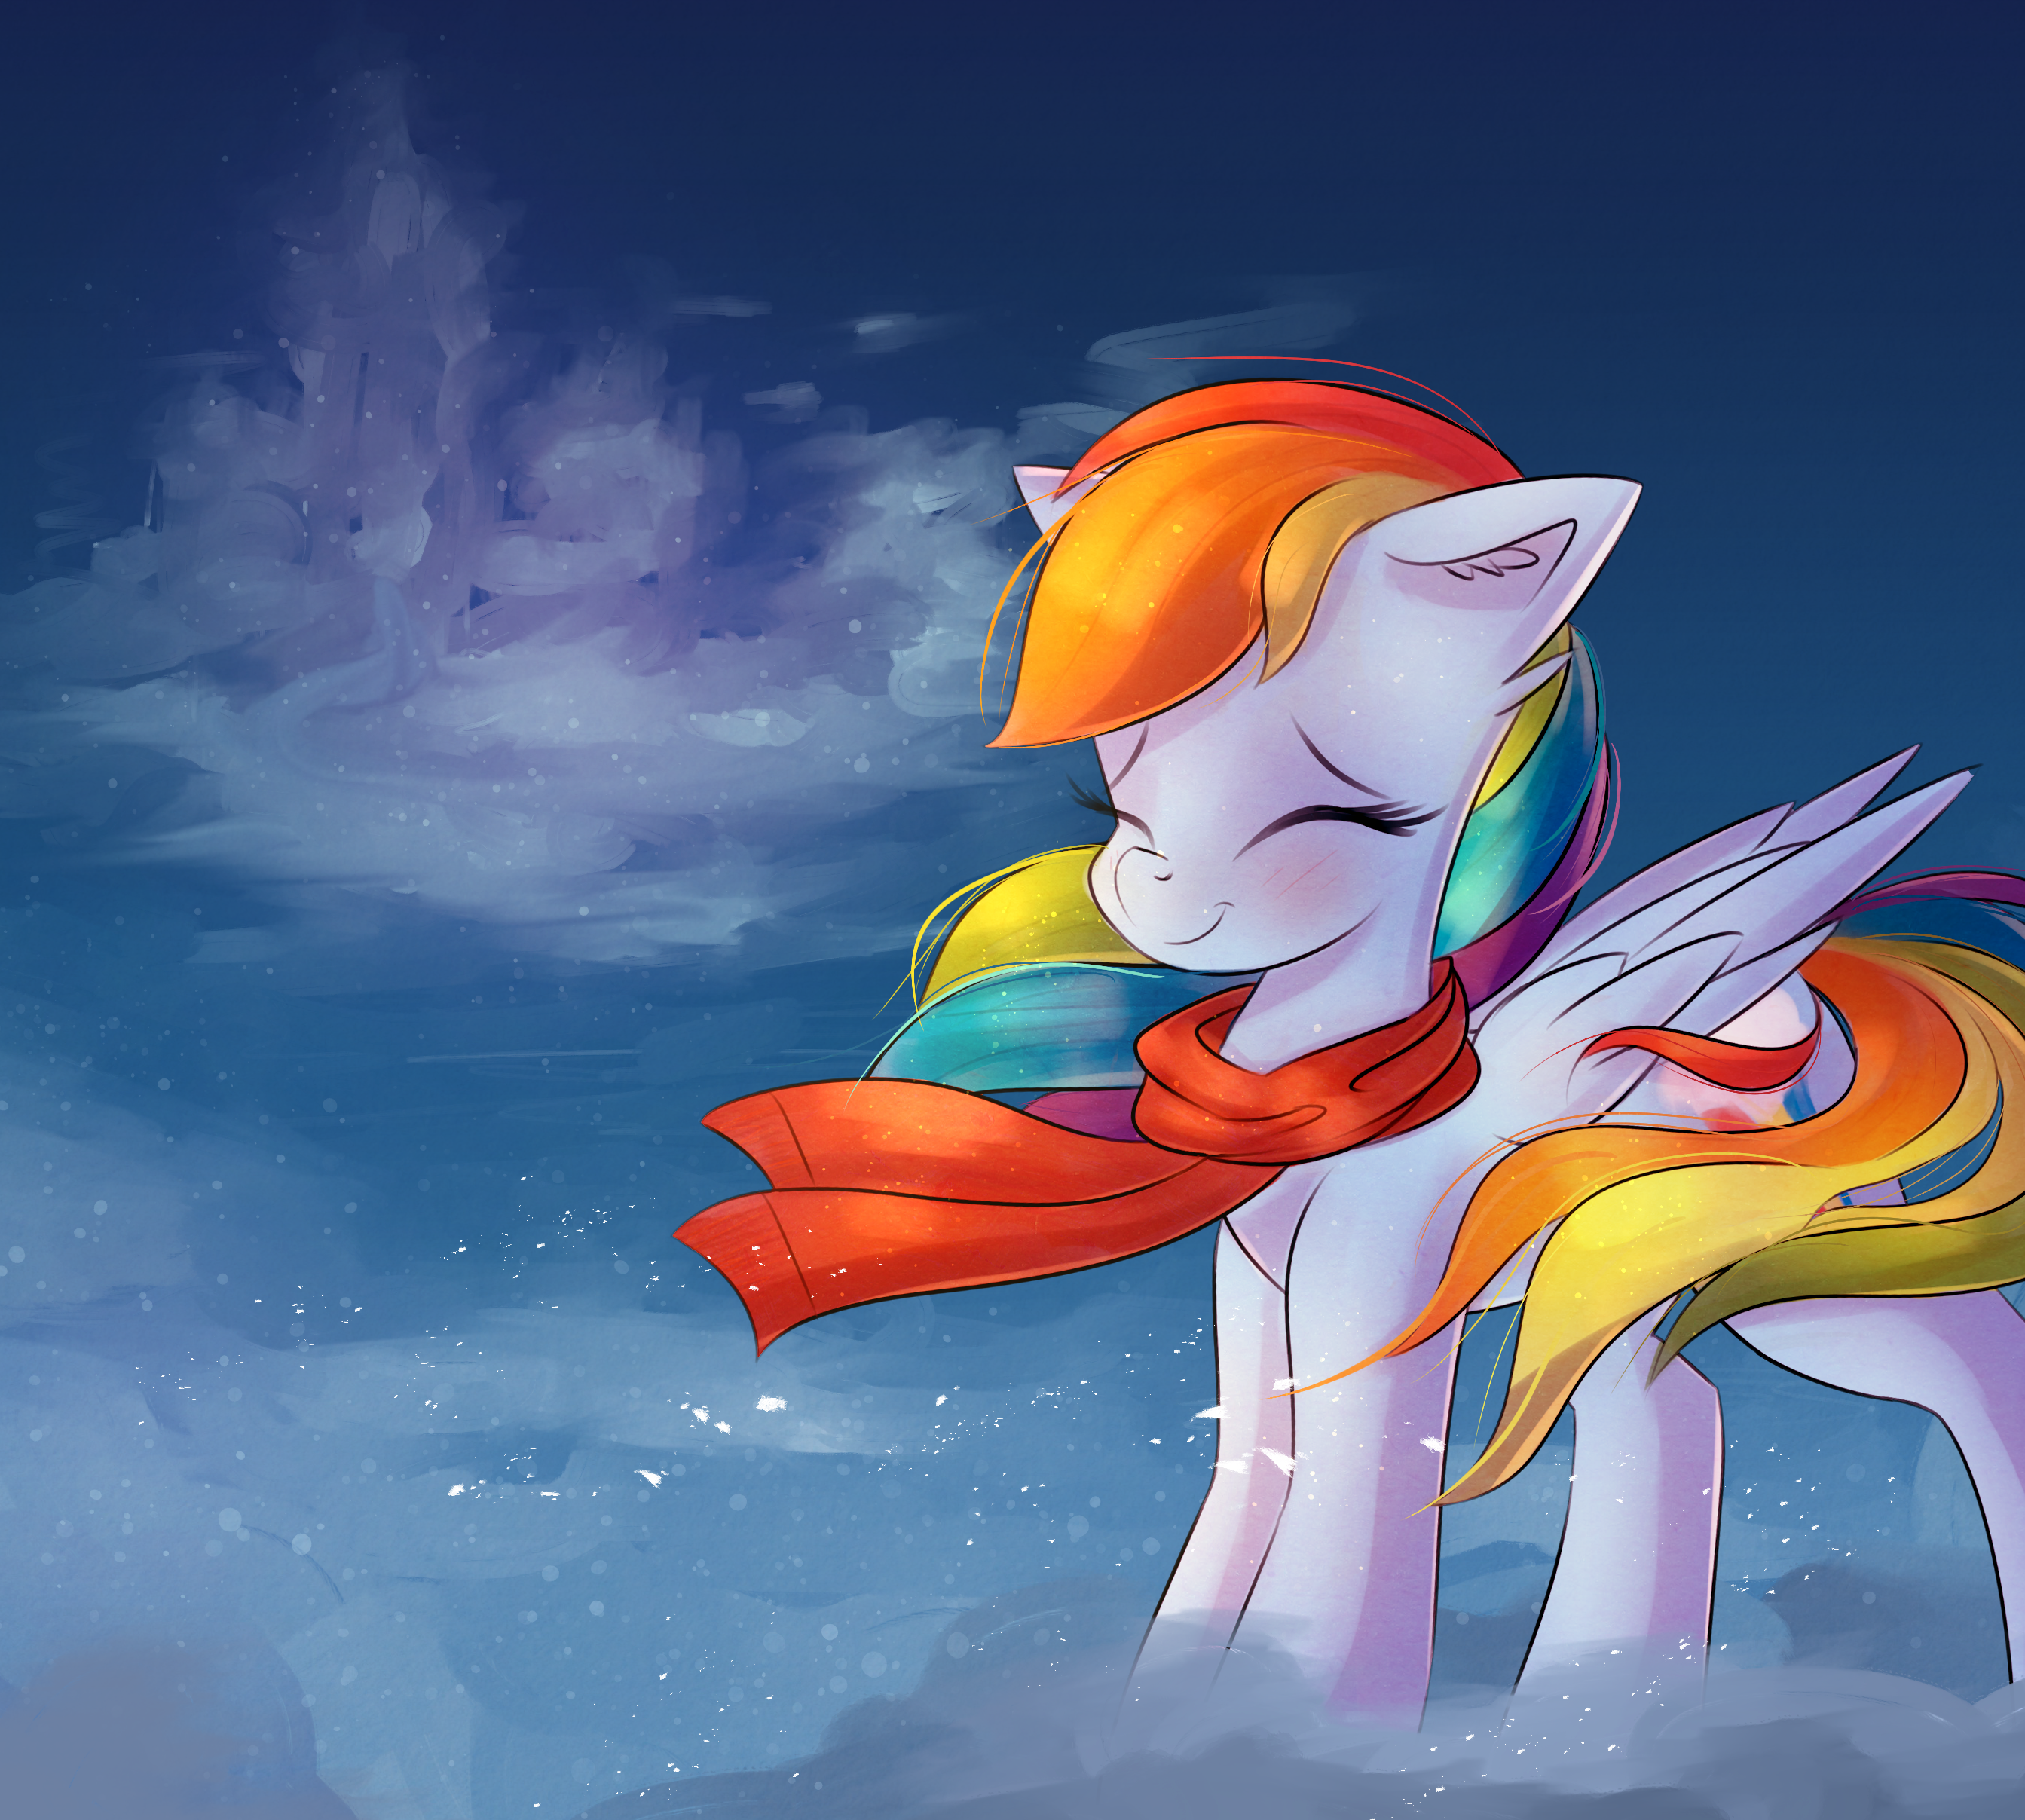 My Home by AutumnVoyage